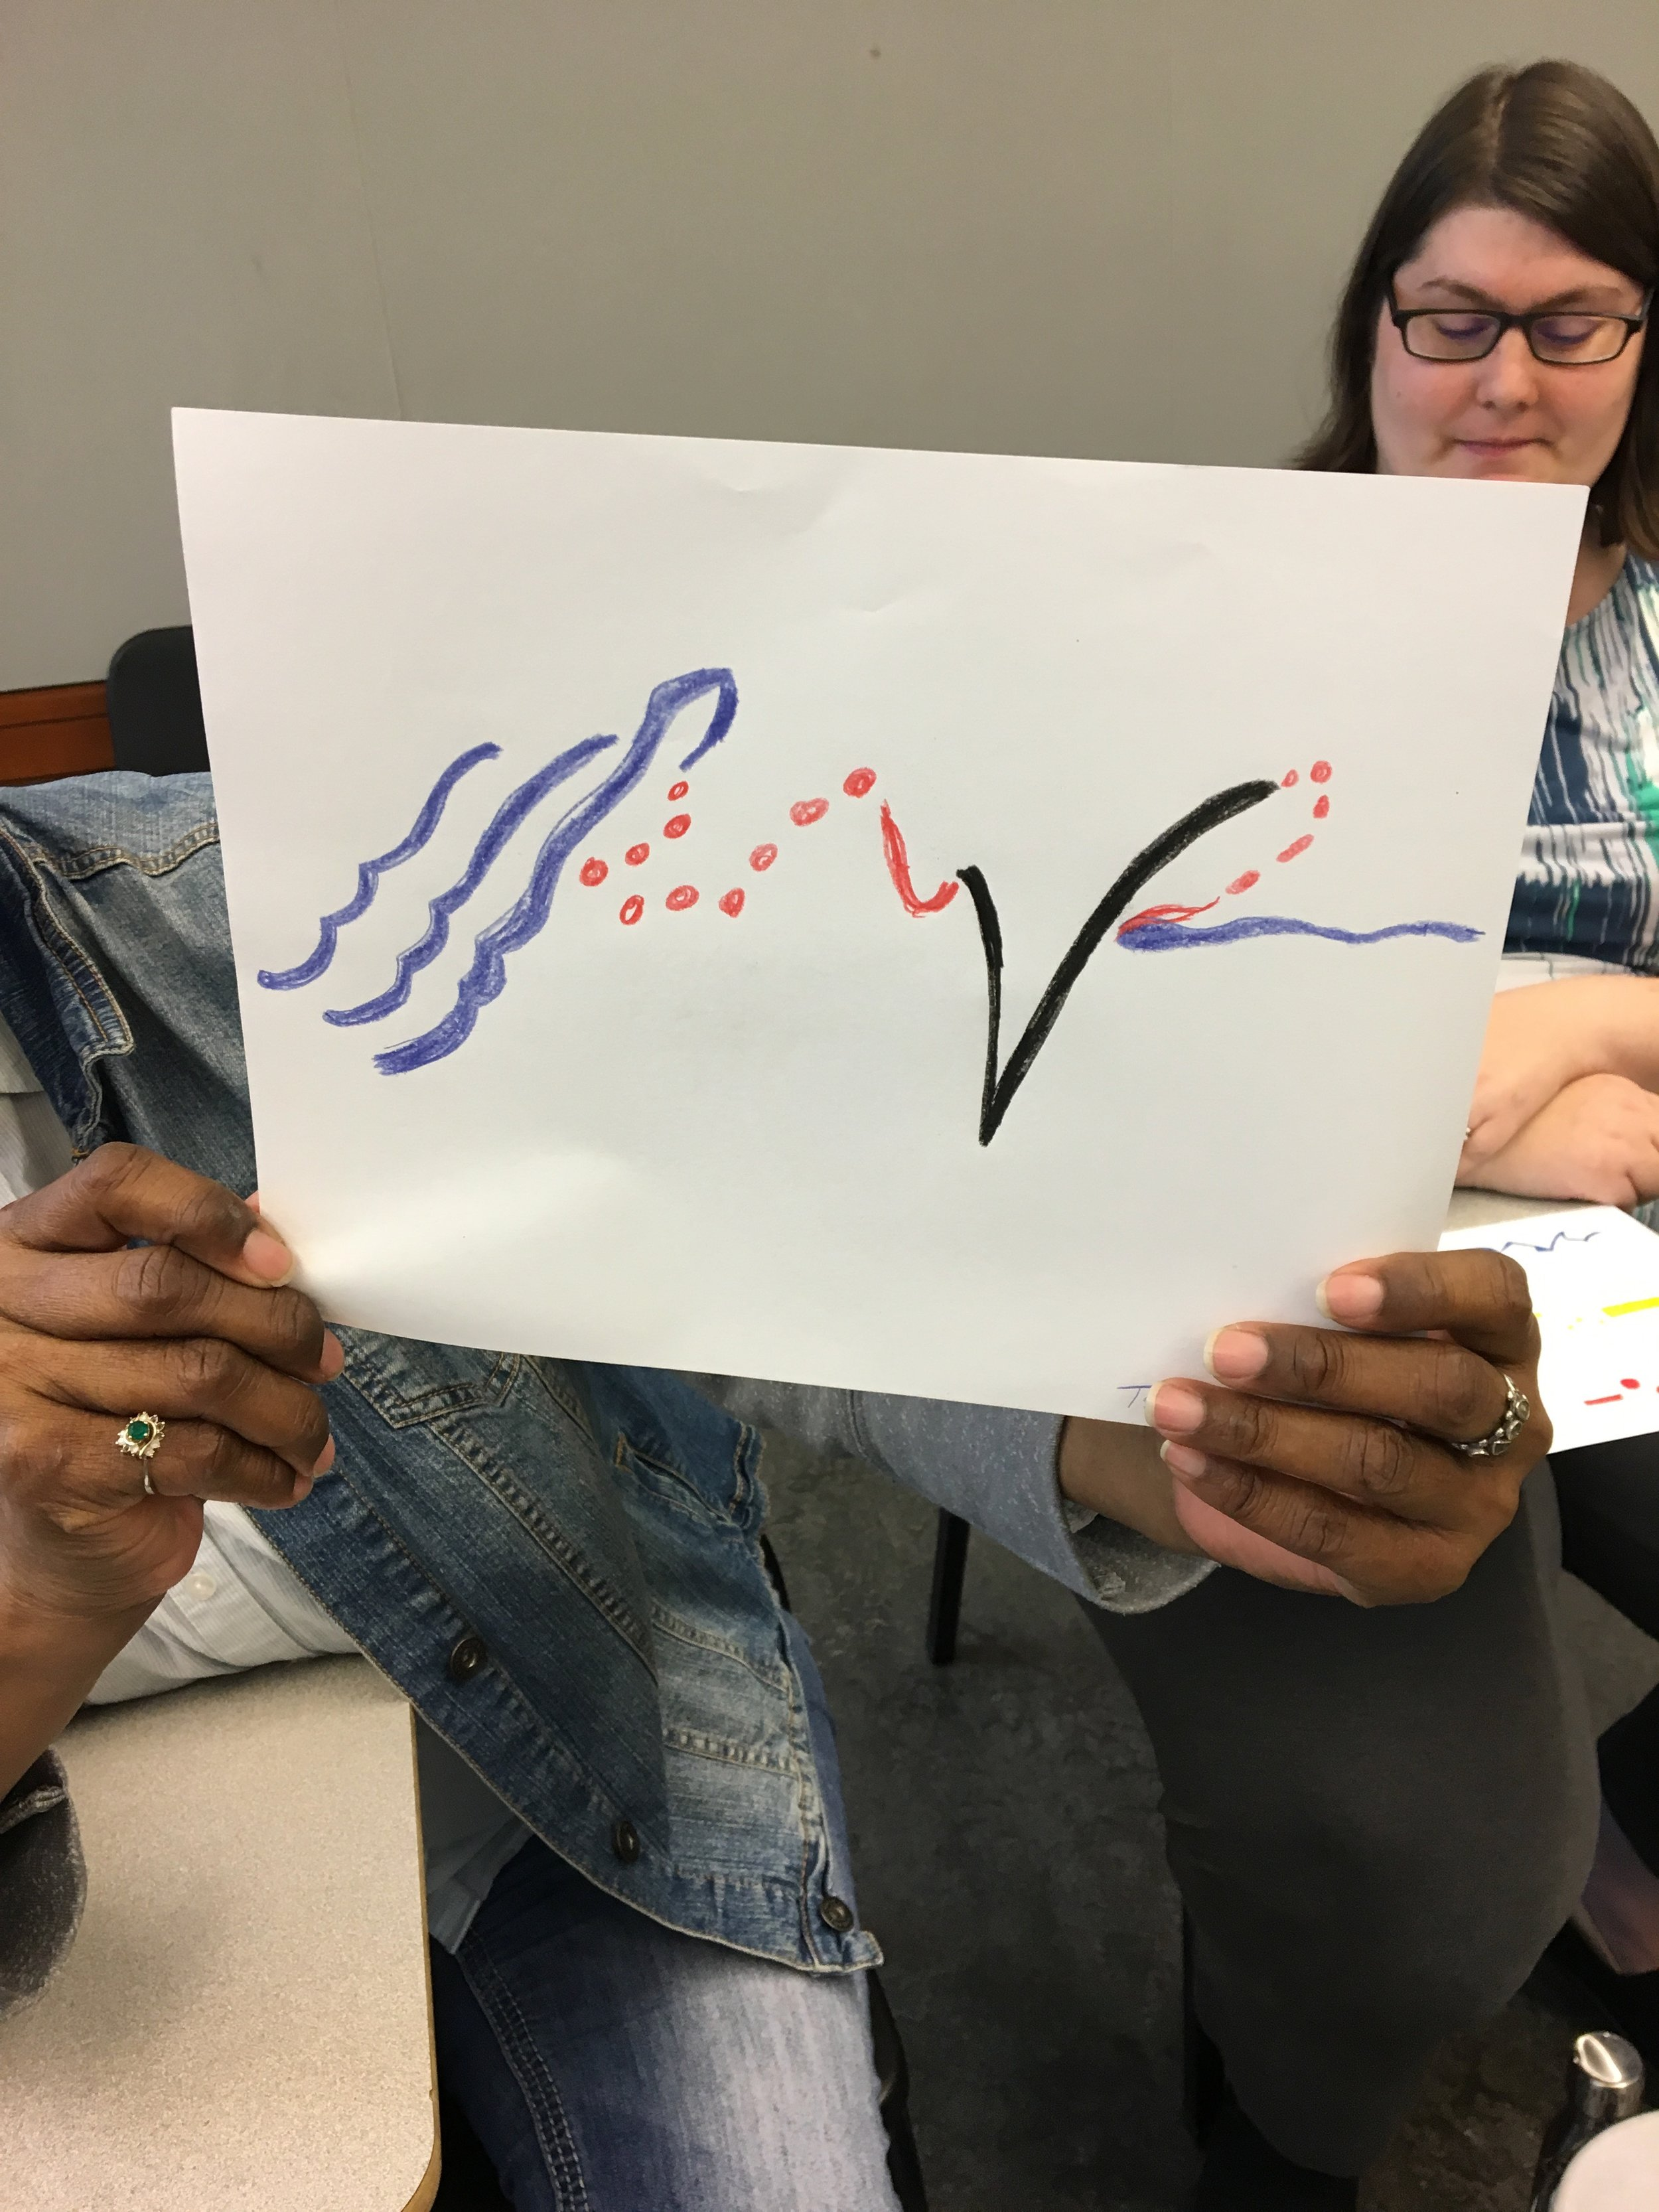 A beautiful piece of graphic notation created by a participant.